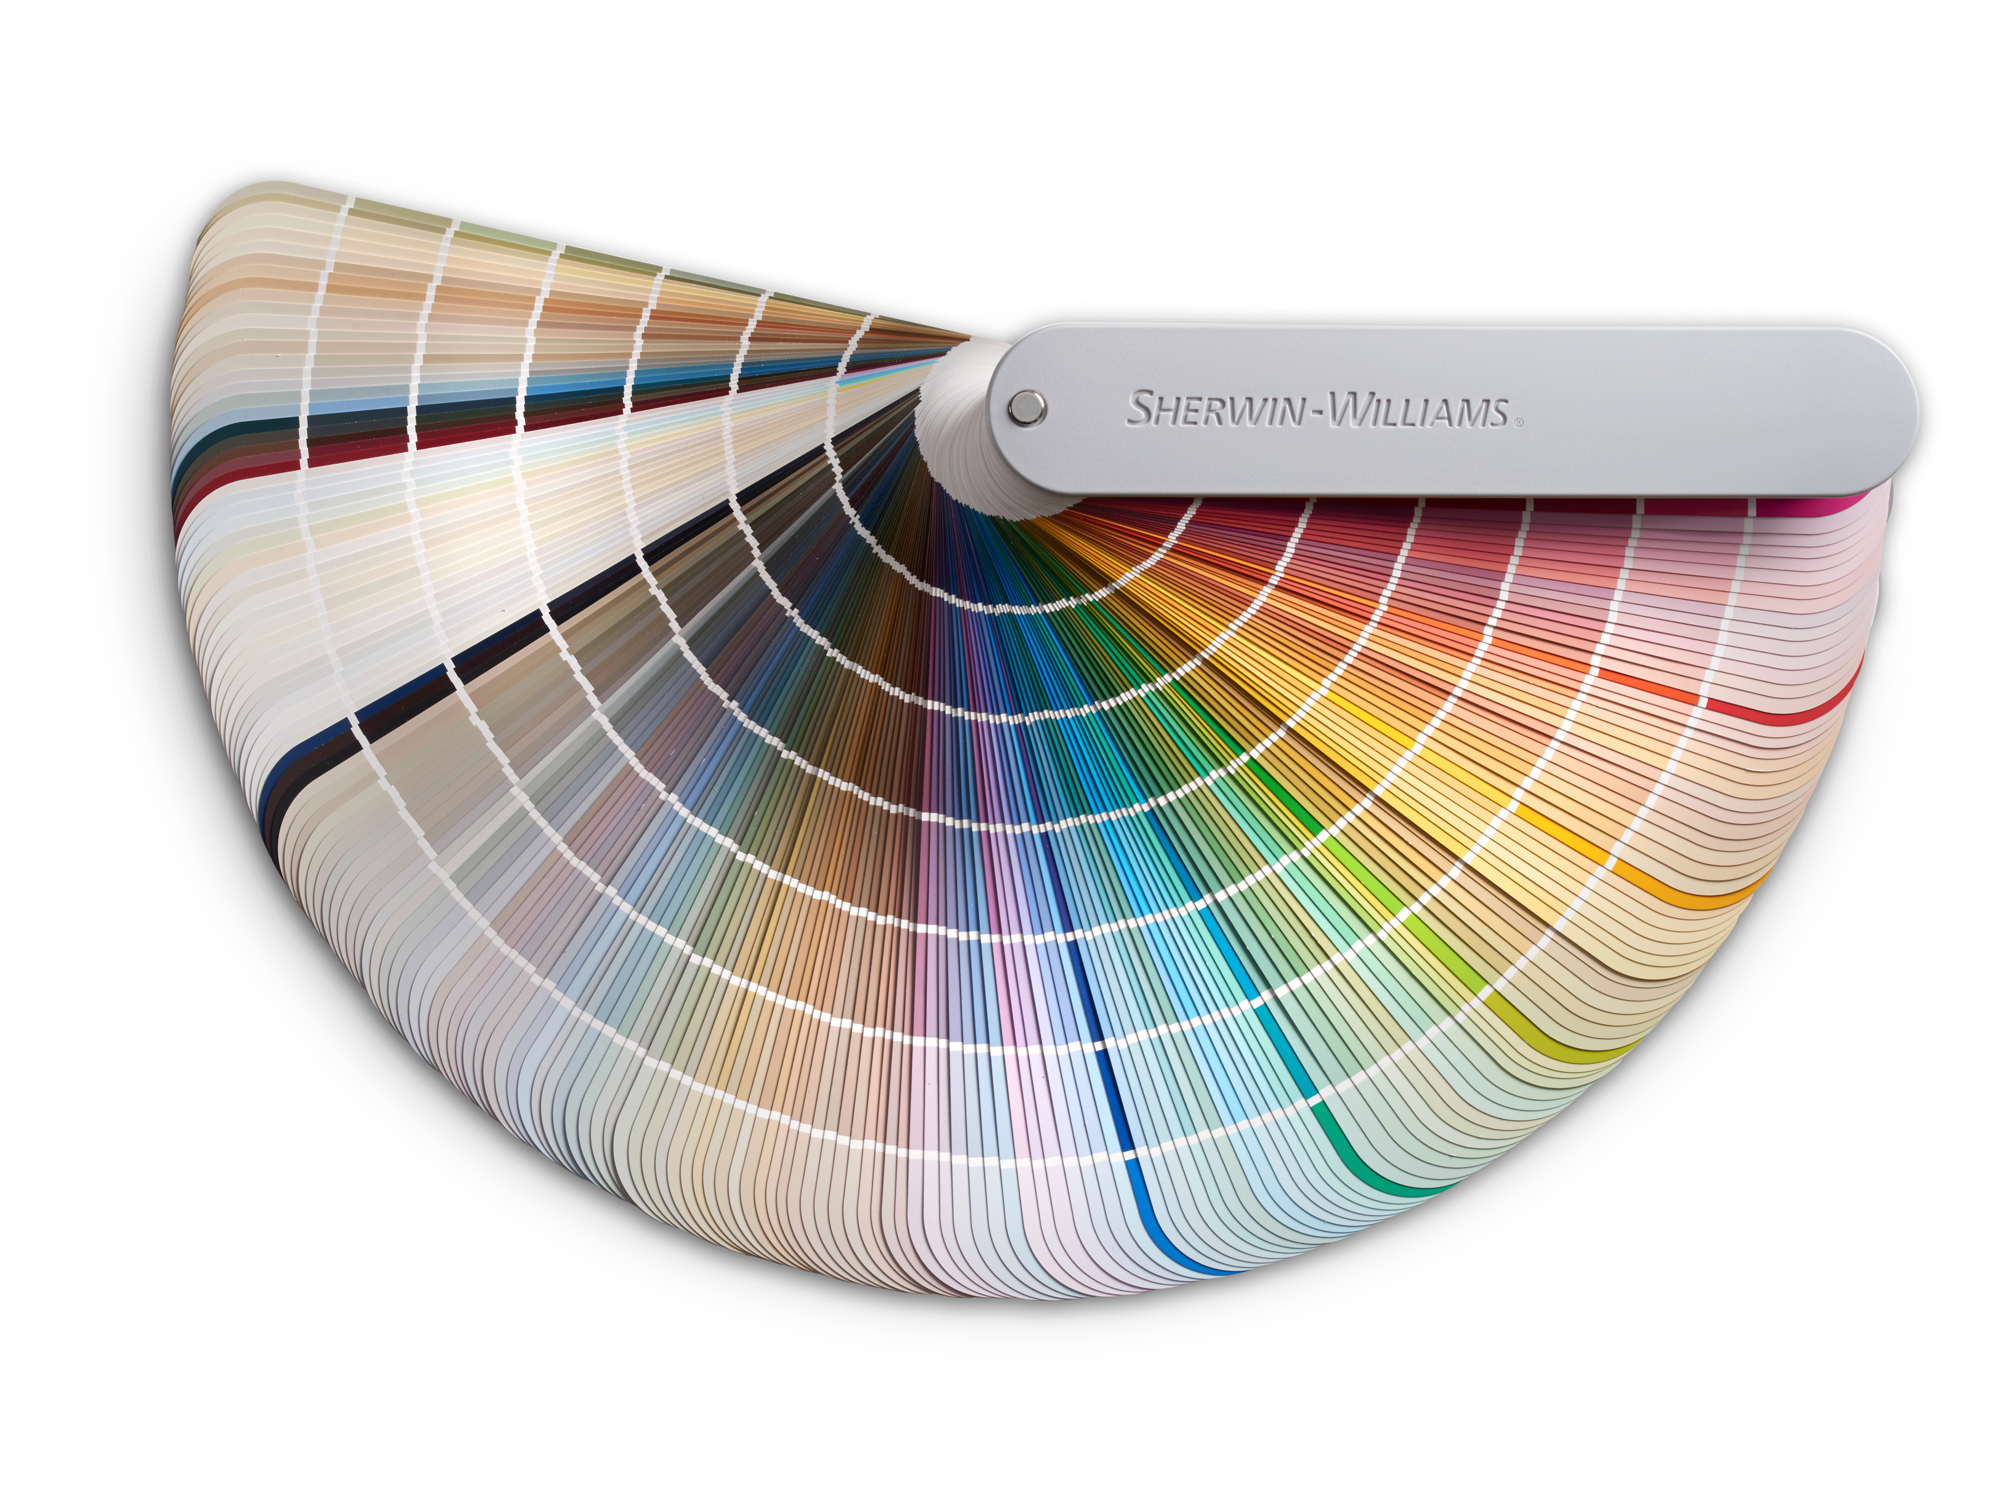 Sherwin Williams Paint Colors Aging In Place Memory Care Design Shouldn T Be Forgotten